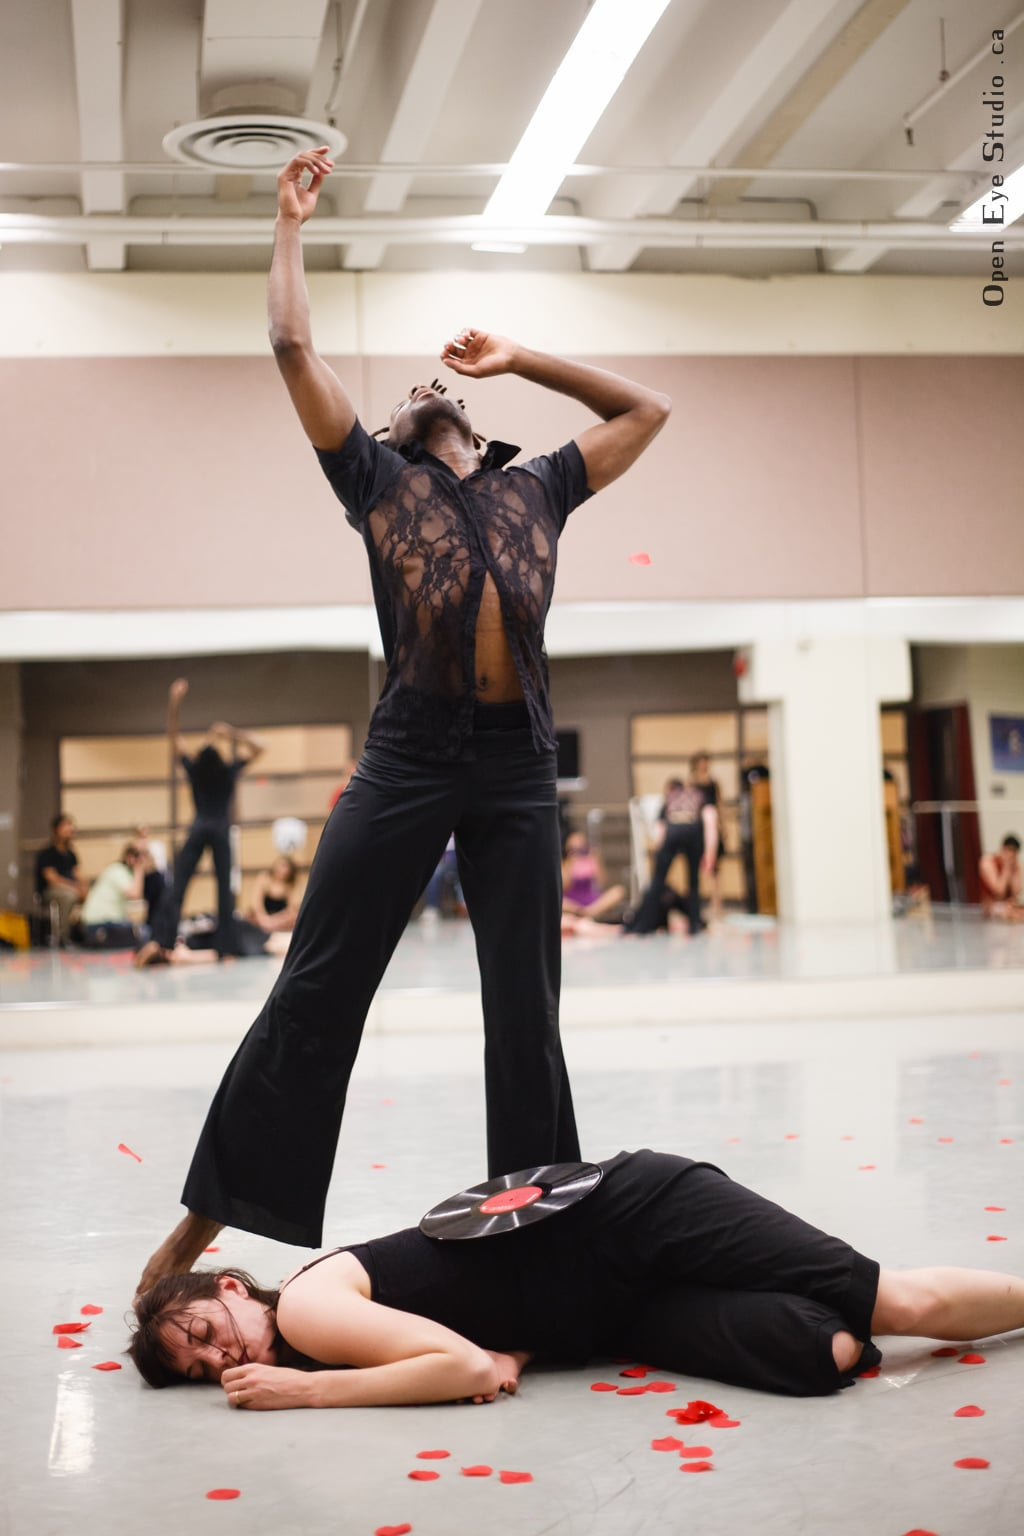 """At the Ballet Jörgen Studios Jose showed his piece """"Last Encounter"""" during the Summer Dance Academy with dancers Natayu Nevule & Corrie Sakaluk."""